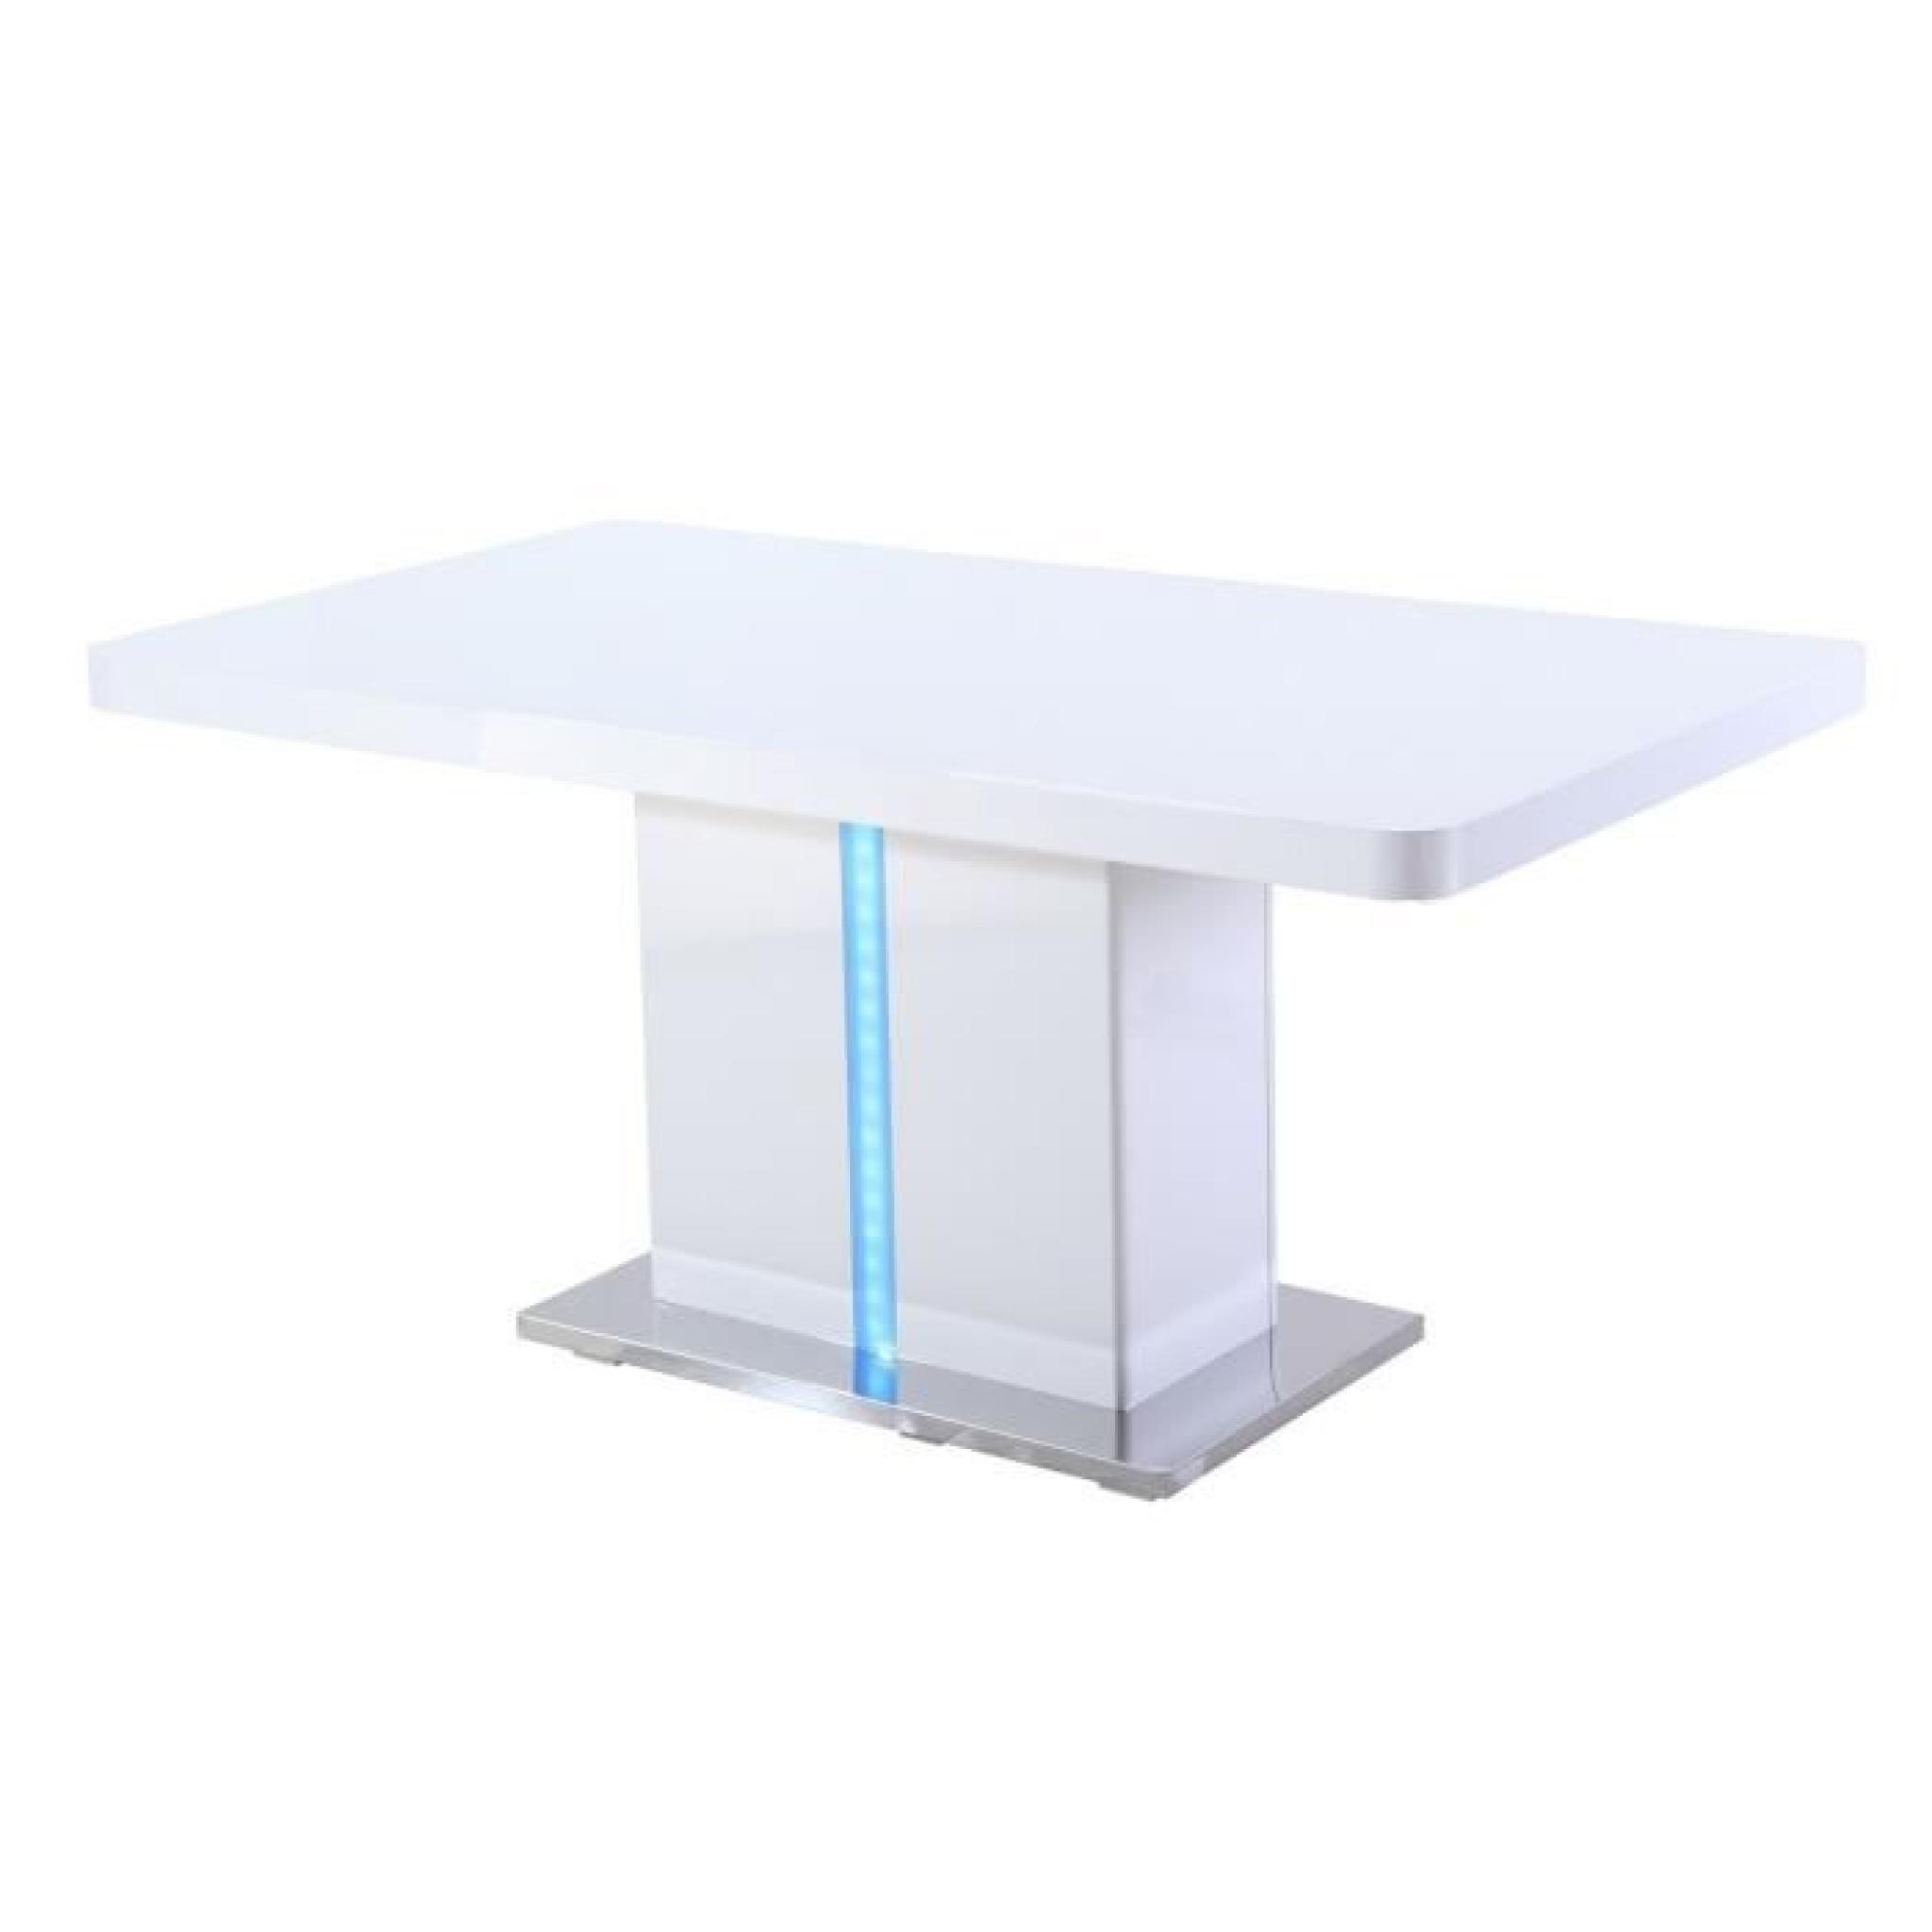 Table a manger blanc laque maison design for Table a manger extensible blanc laque